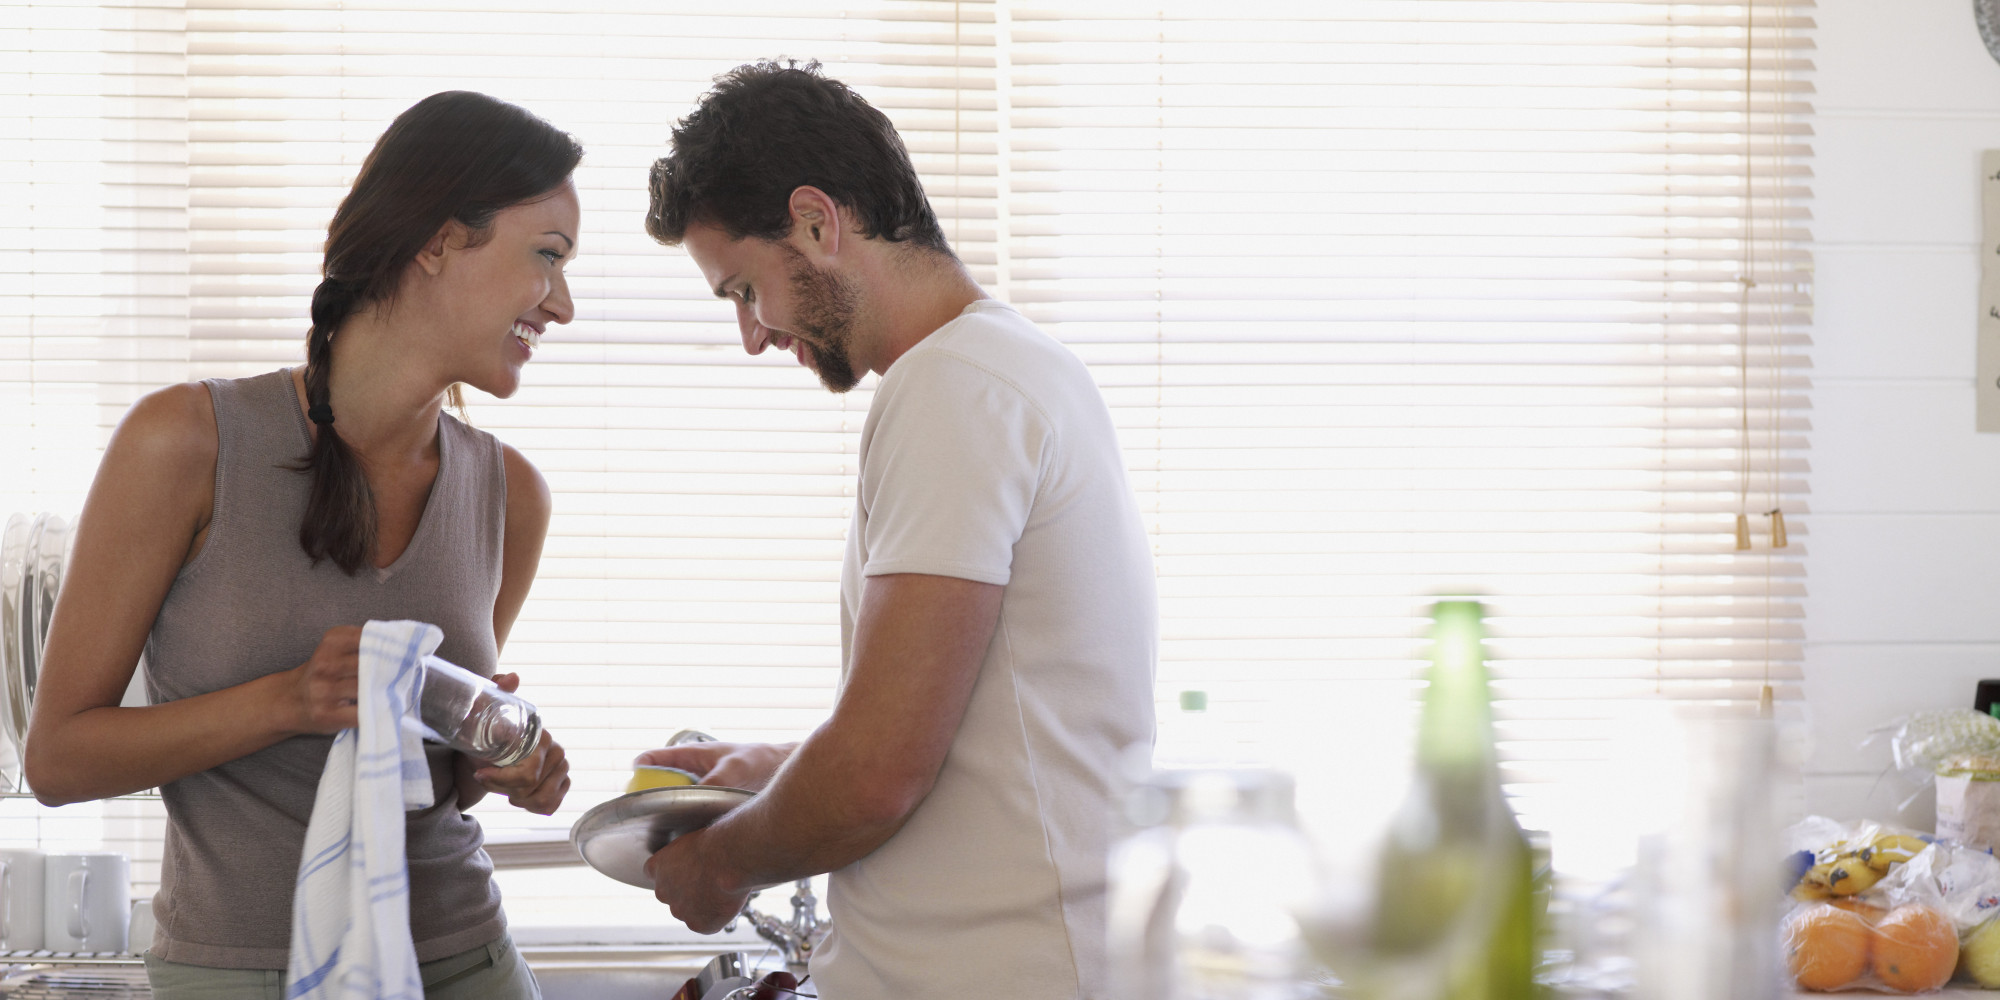 15 Ways to Make Your Man Feel Special